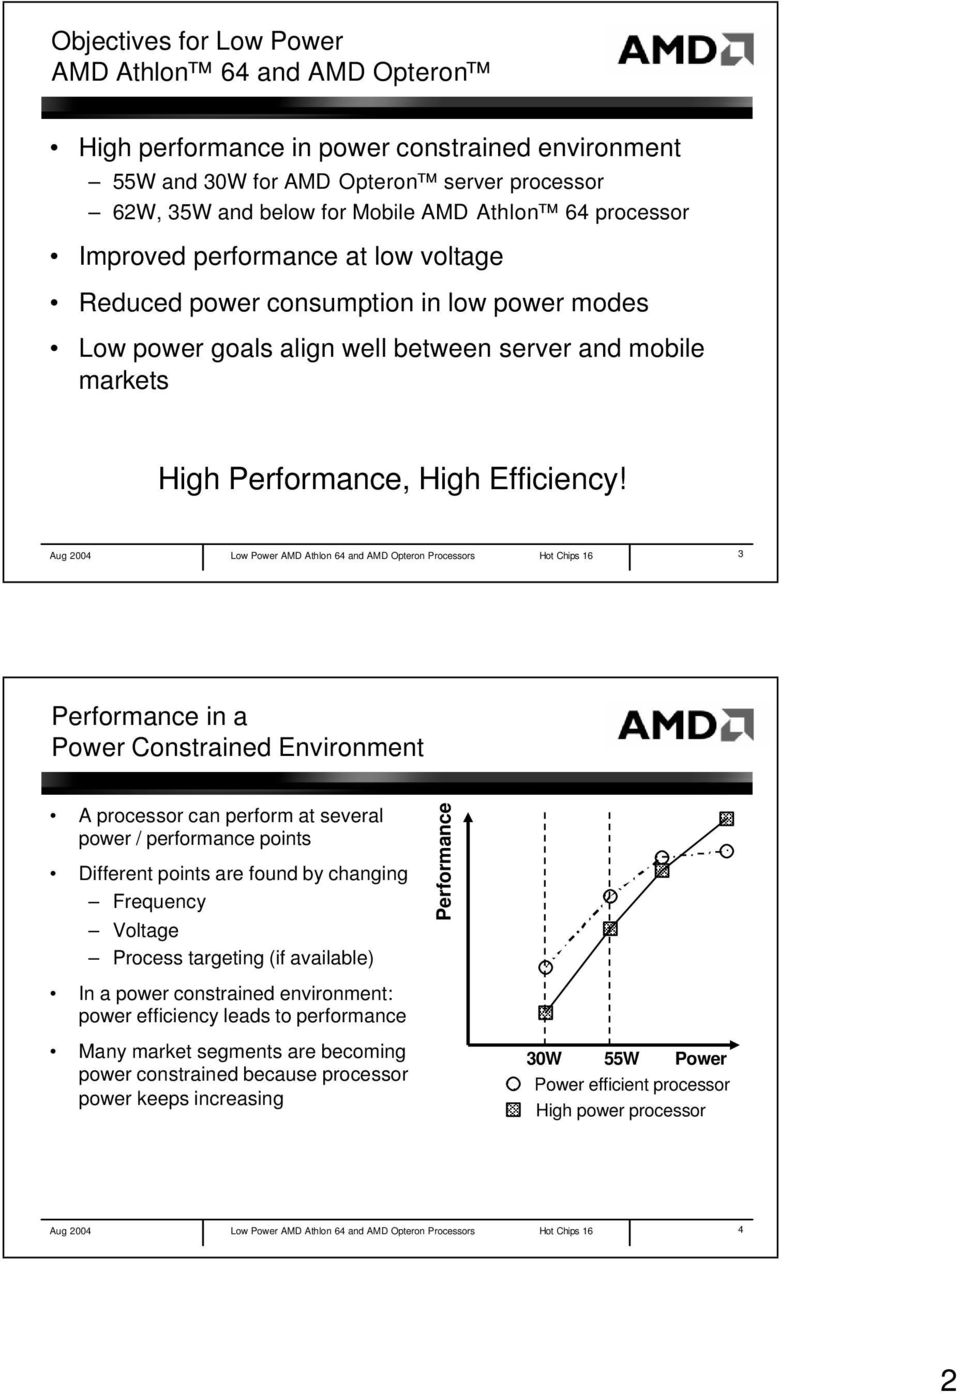 Aug 2004 Low Power AMD Athlon 64 and AMD Opteron Processors Hot Chips 16 3 Performance in a Power Constrained Environment A processor can perform at several power / performance points Different